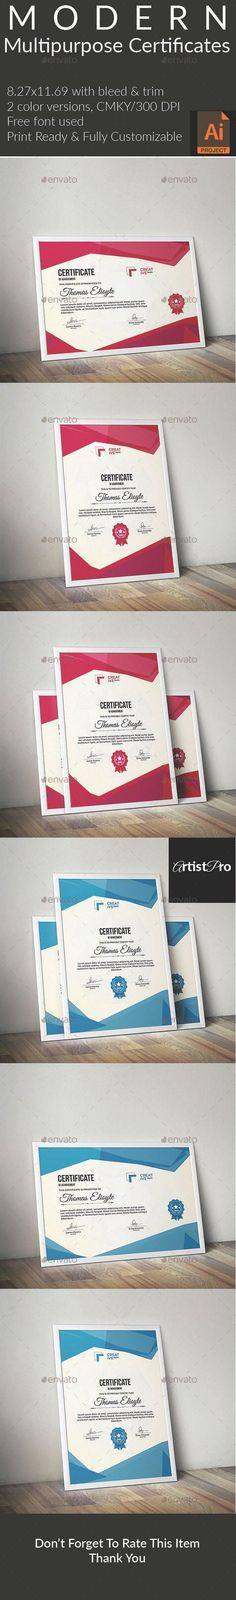 Multipurpose Certificate by ArtistPro Name: Certificate Template color Ai Stationery Printing, Stationery Templates, Stationery Design, Print Templates, Resume Templates, Design Templates, Certificate Design, Certificate Templates, Illustrator Cs5